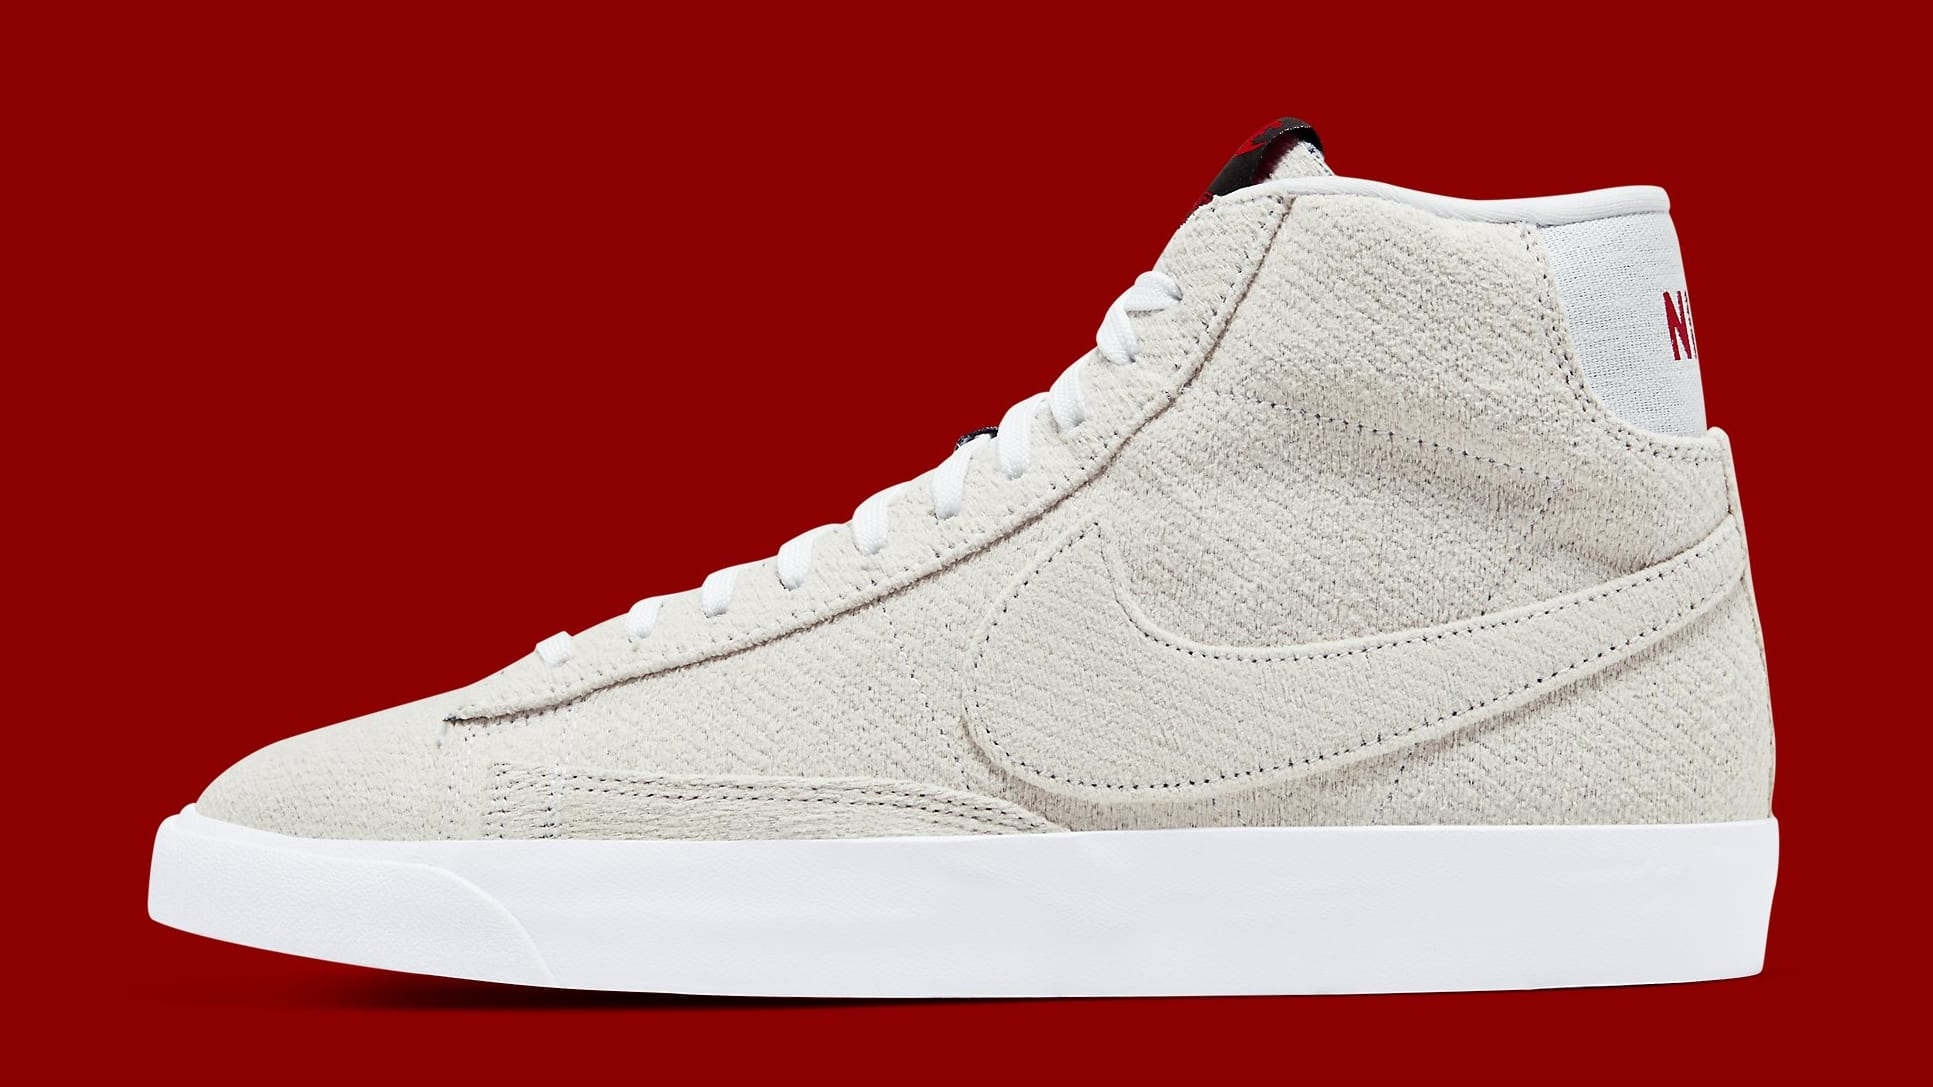 Stranger Things x Nike Blazer Mid 'Starcourt Mall' CJ6102-100 Lateral